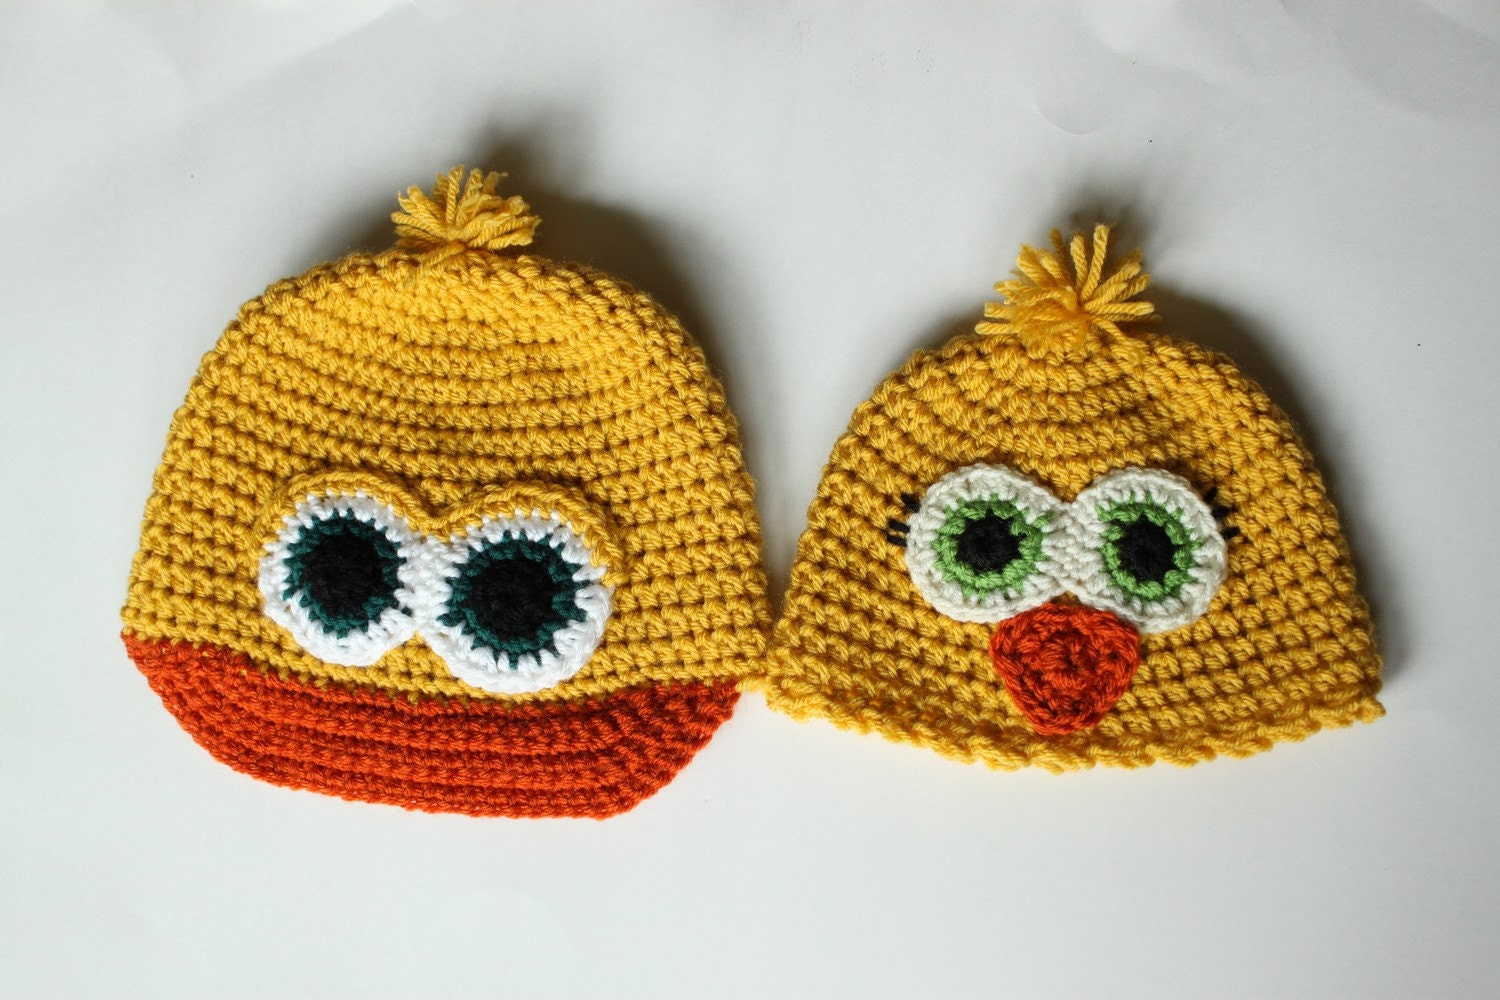 Crochet Baby Duck Pattern : Items similar to Duck or Chick Hat Crochet Pattern (Baby ...